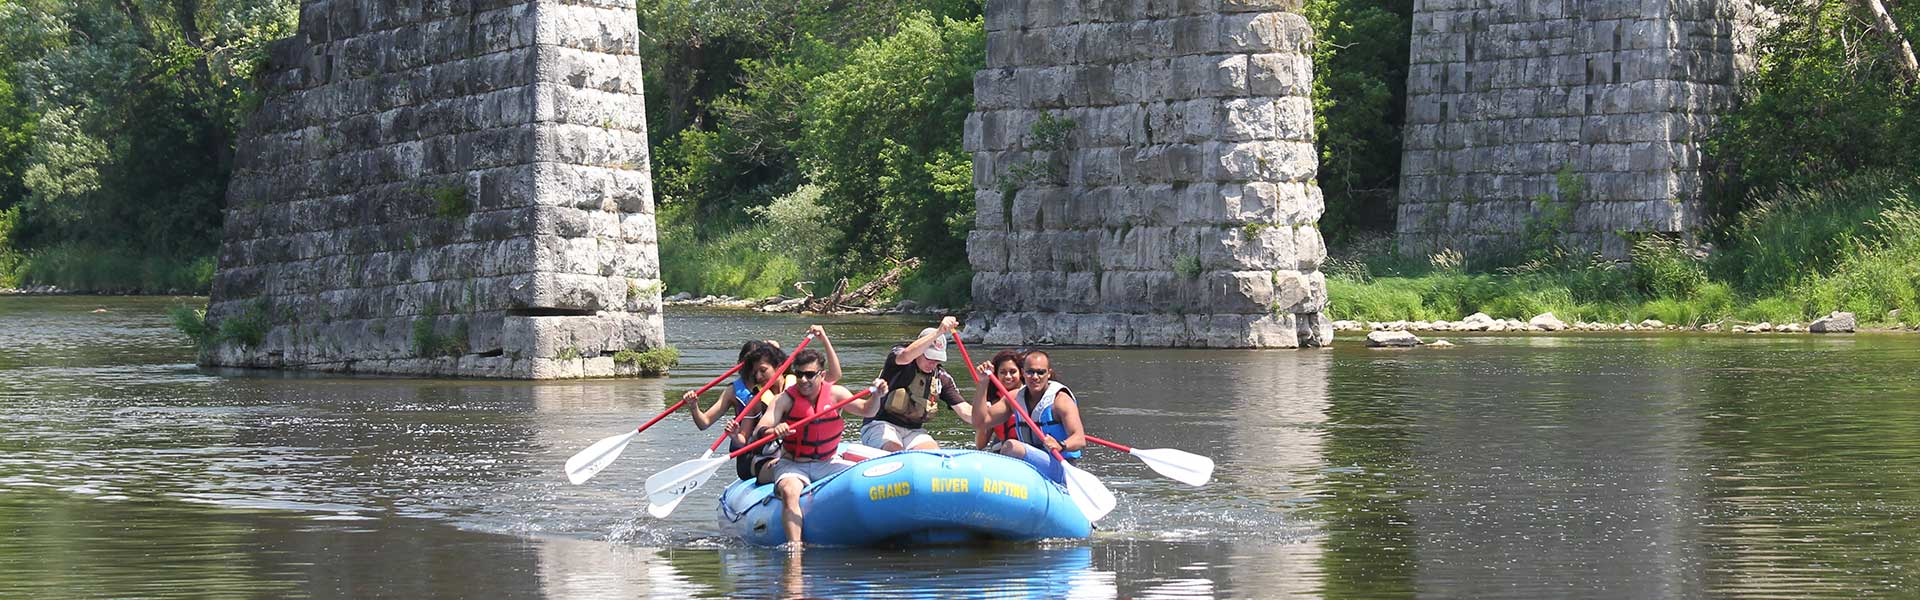 Rafting through the Three Sisters on the Grand River